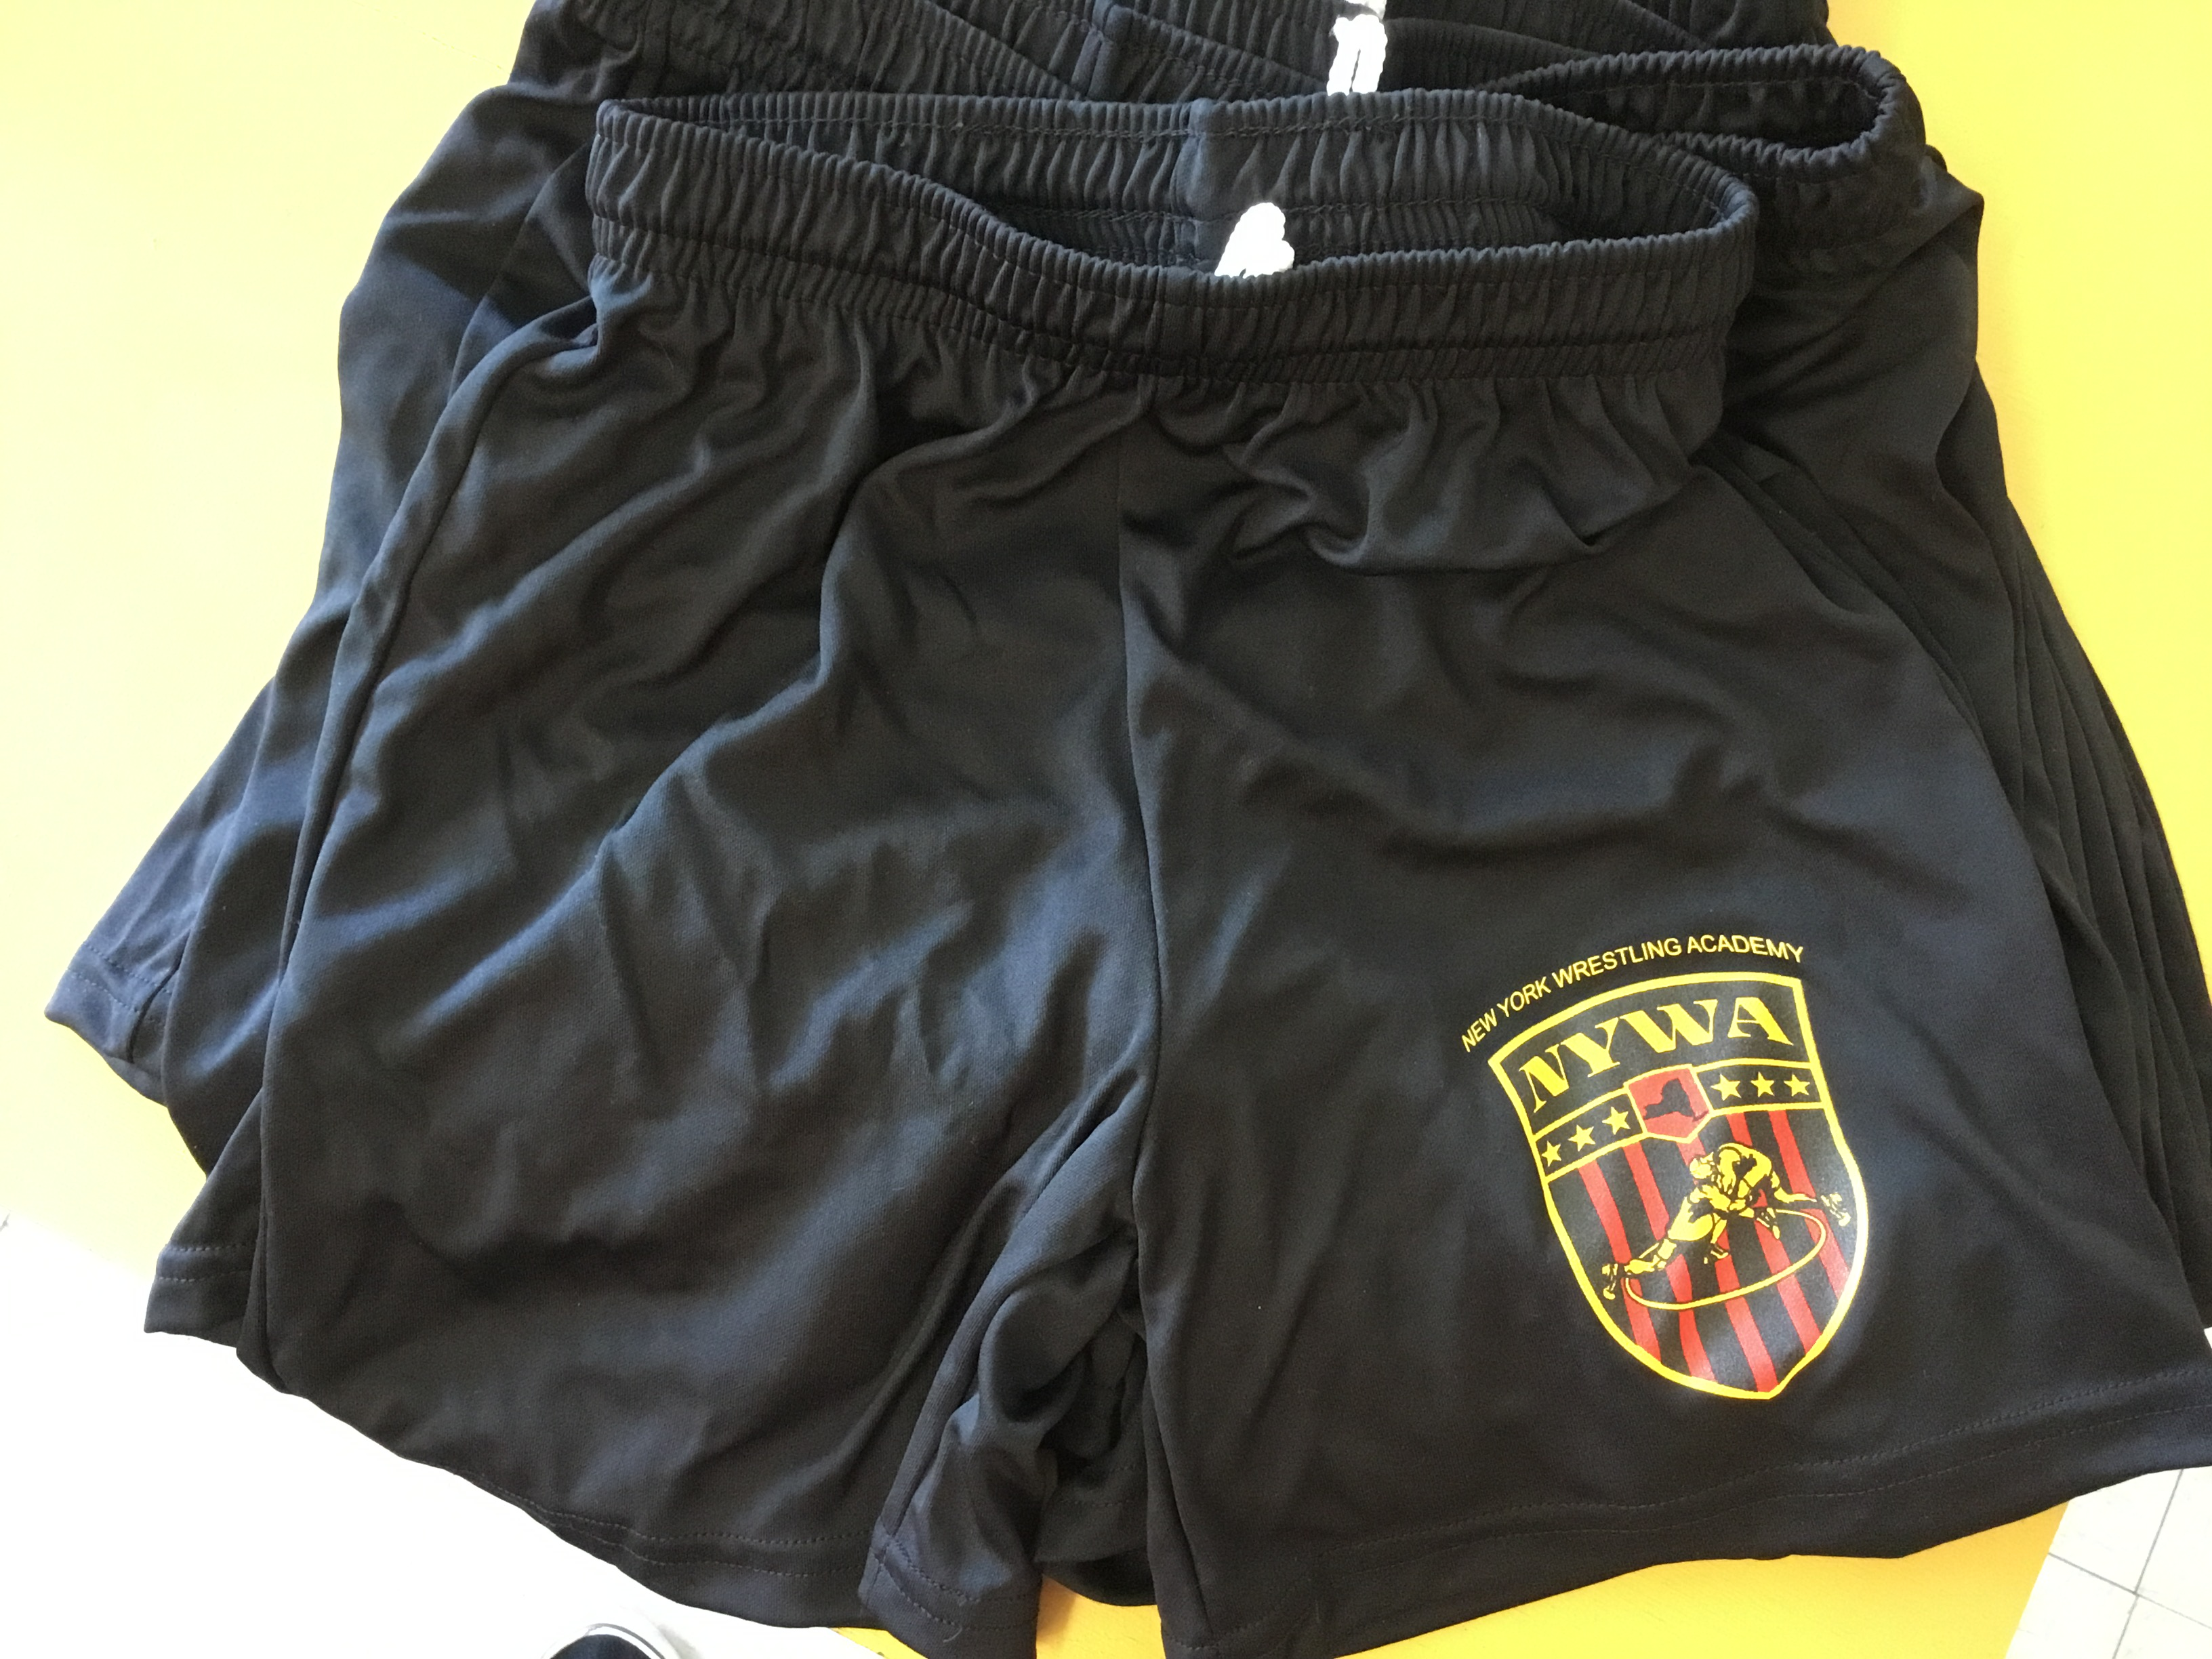 NYWA Wrestling Shorts